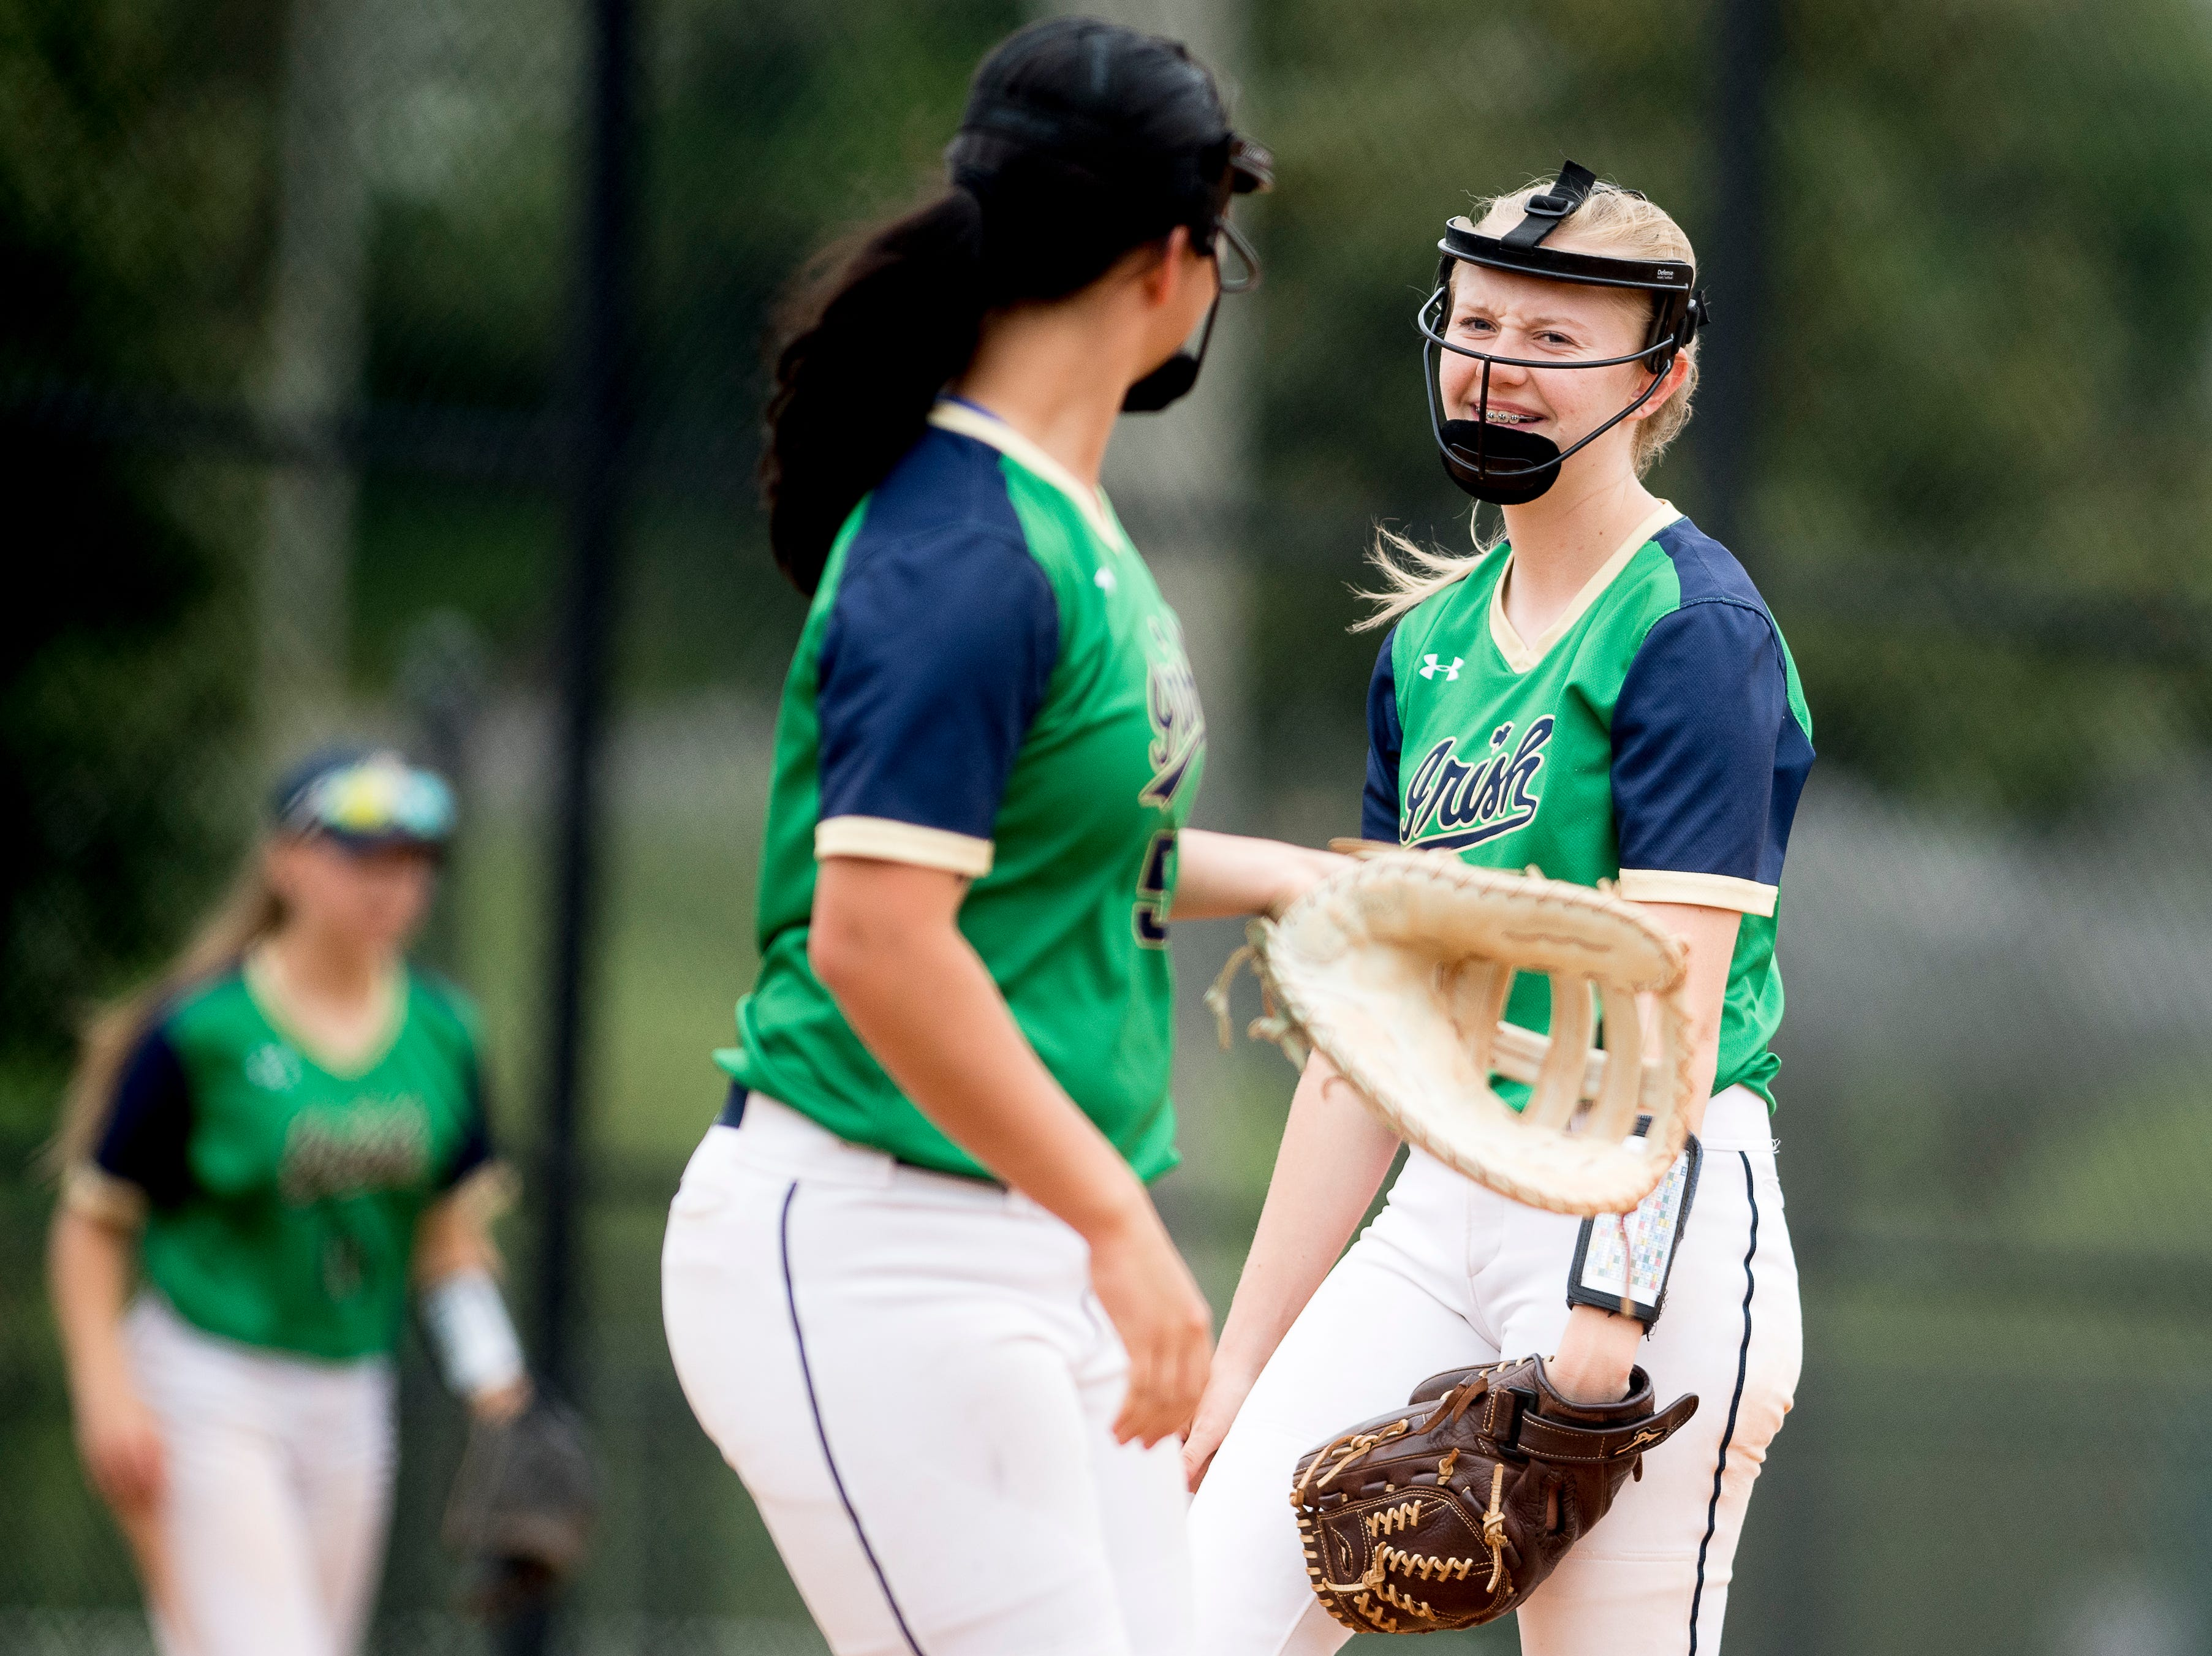 Catholic's Bri Costello (8) laughs with first baseman Emma Schaad (55) during a softball game between Catholic and Karns at Caswell Park in Knoxville, Tennessee on Friday, April 12, 2019.